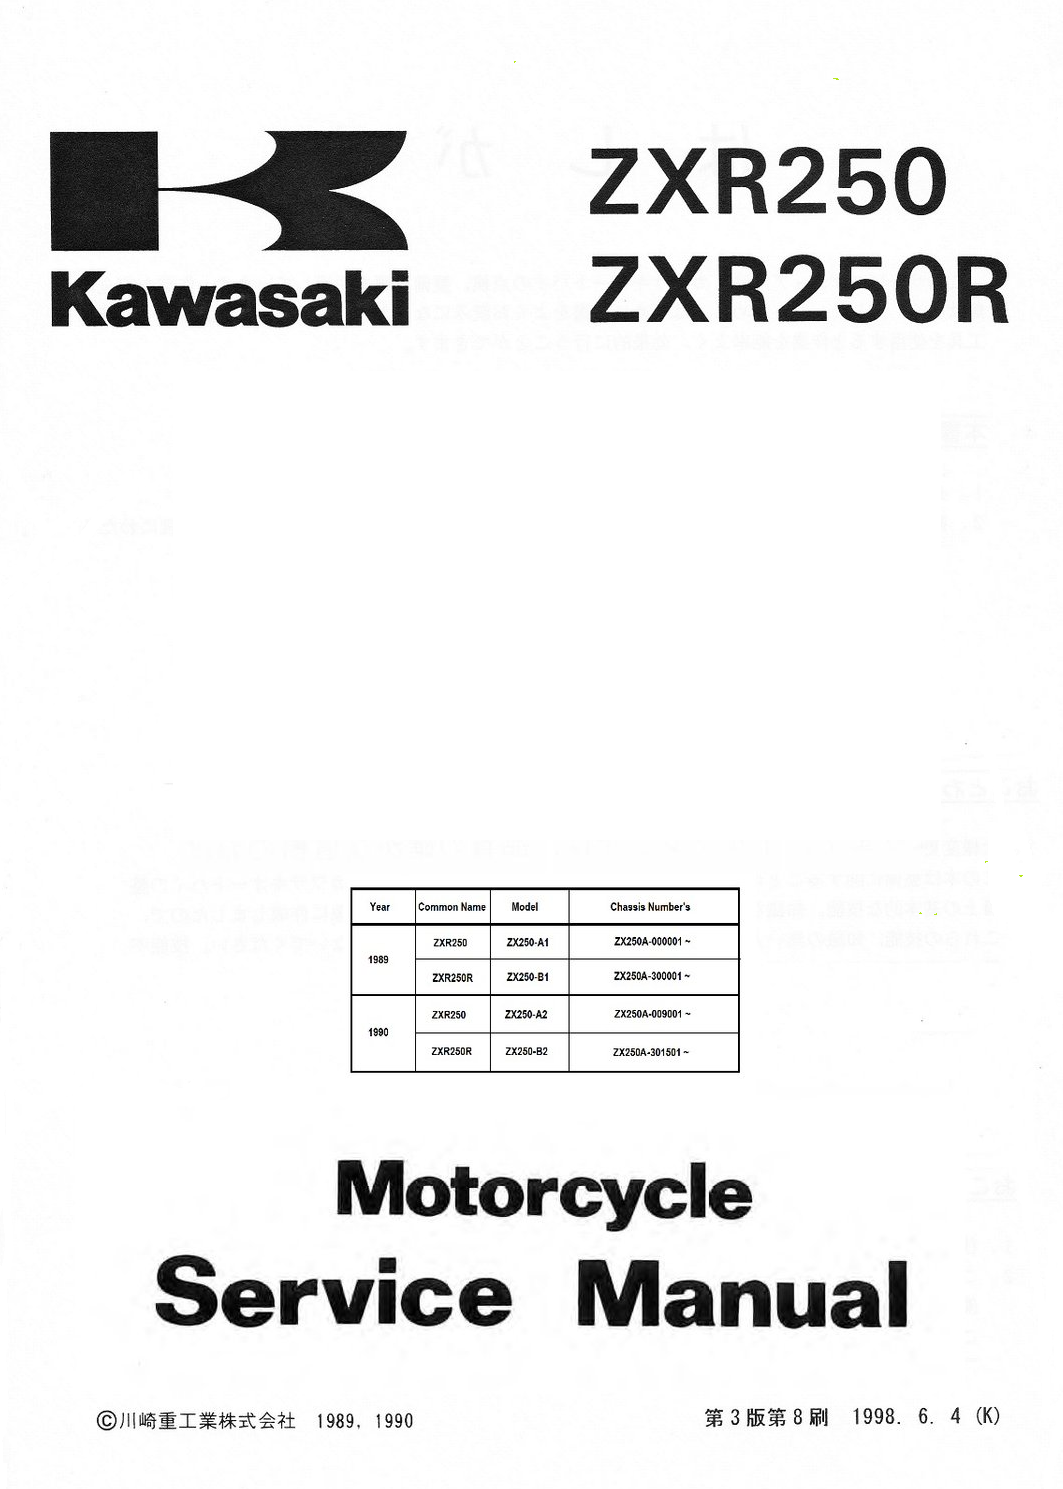 ZXR250A cover english.png